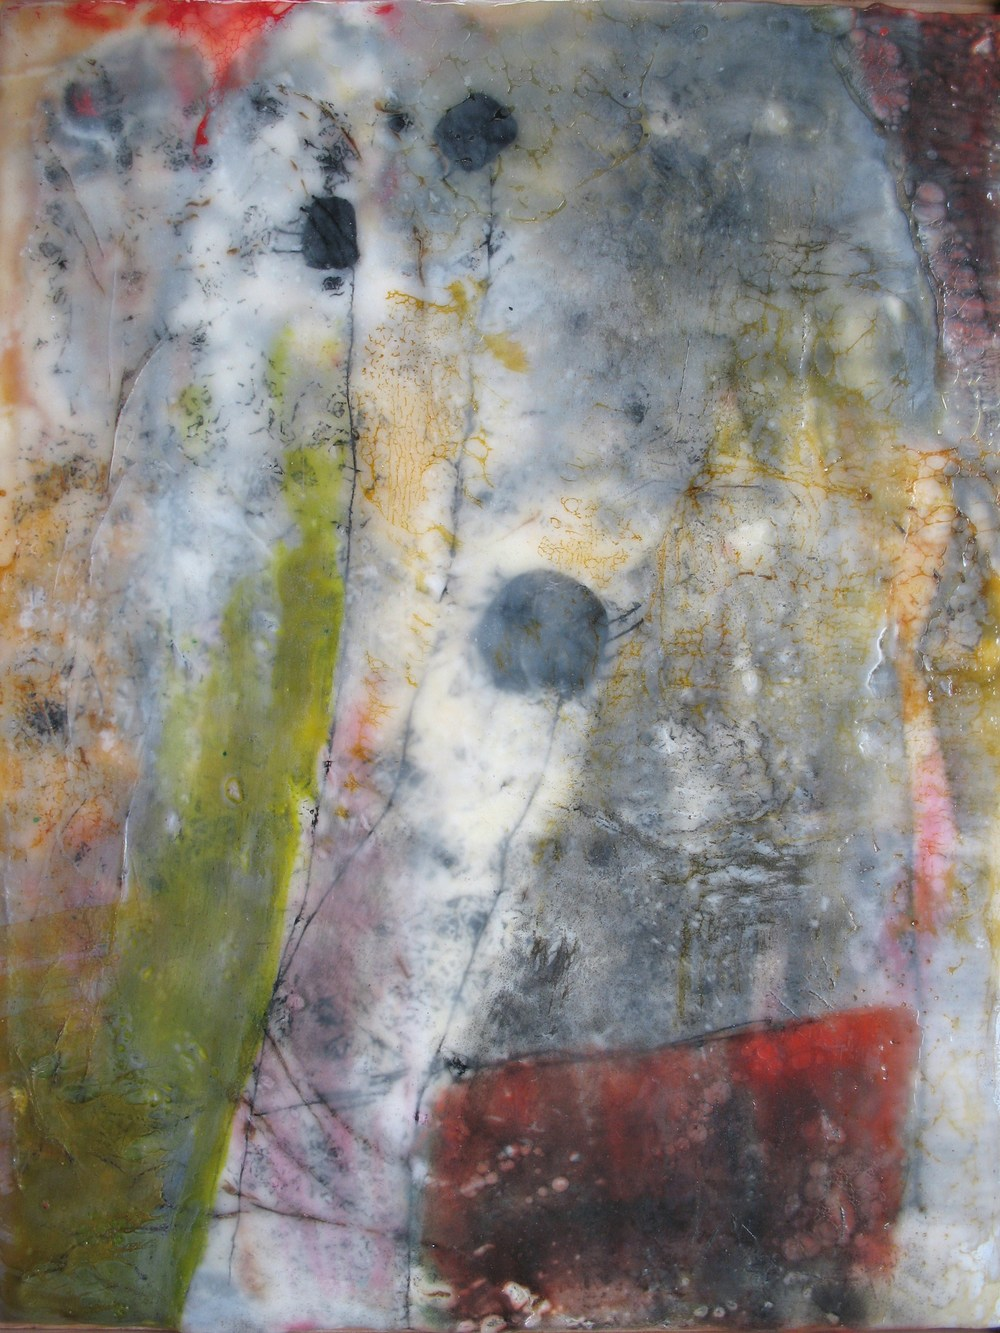 Pandora, 2008  /  Encaustic on wood panel, framed, 12 x 15